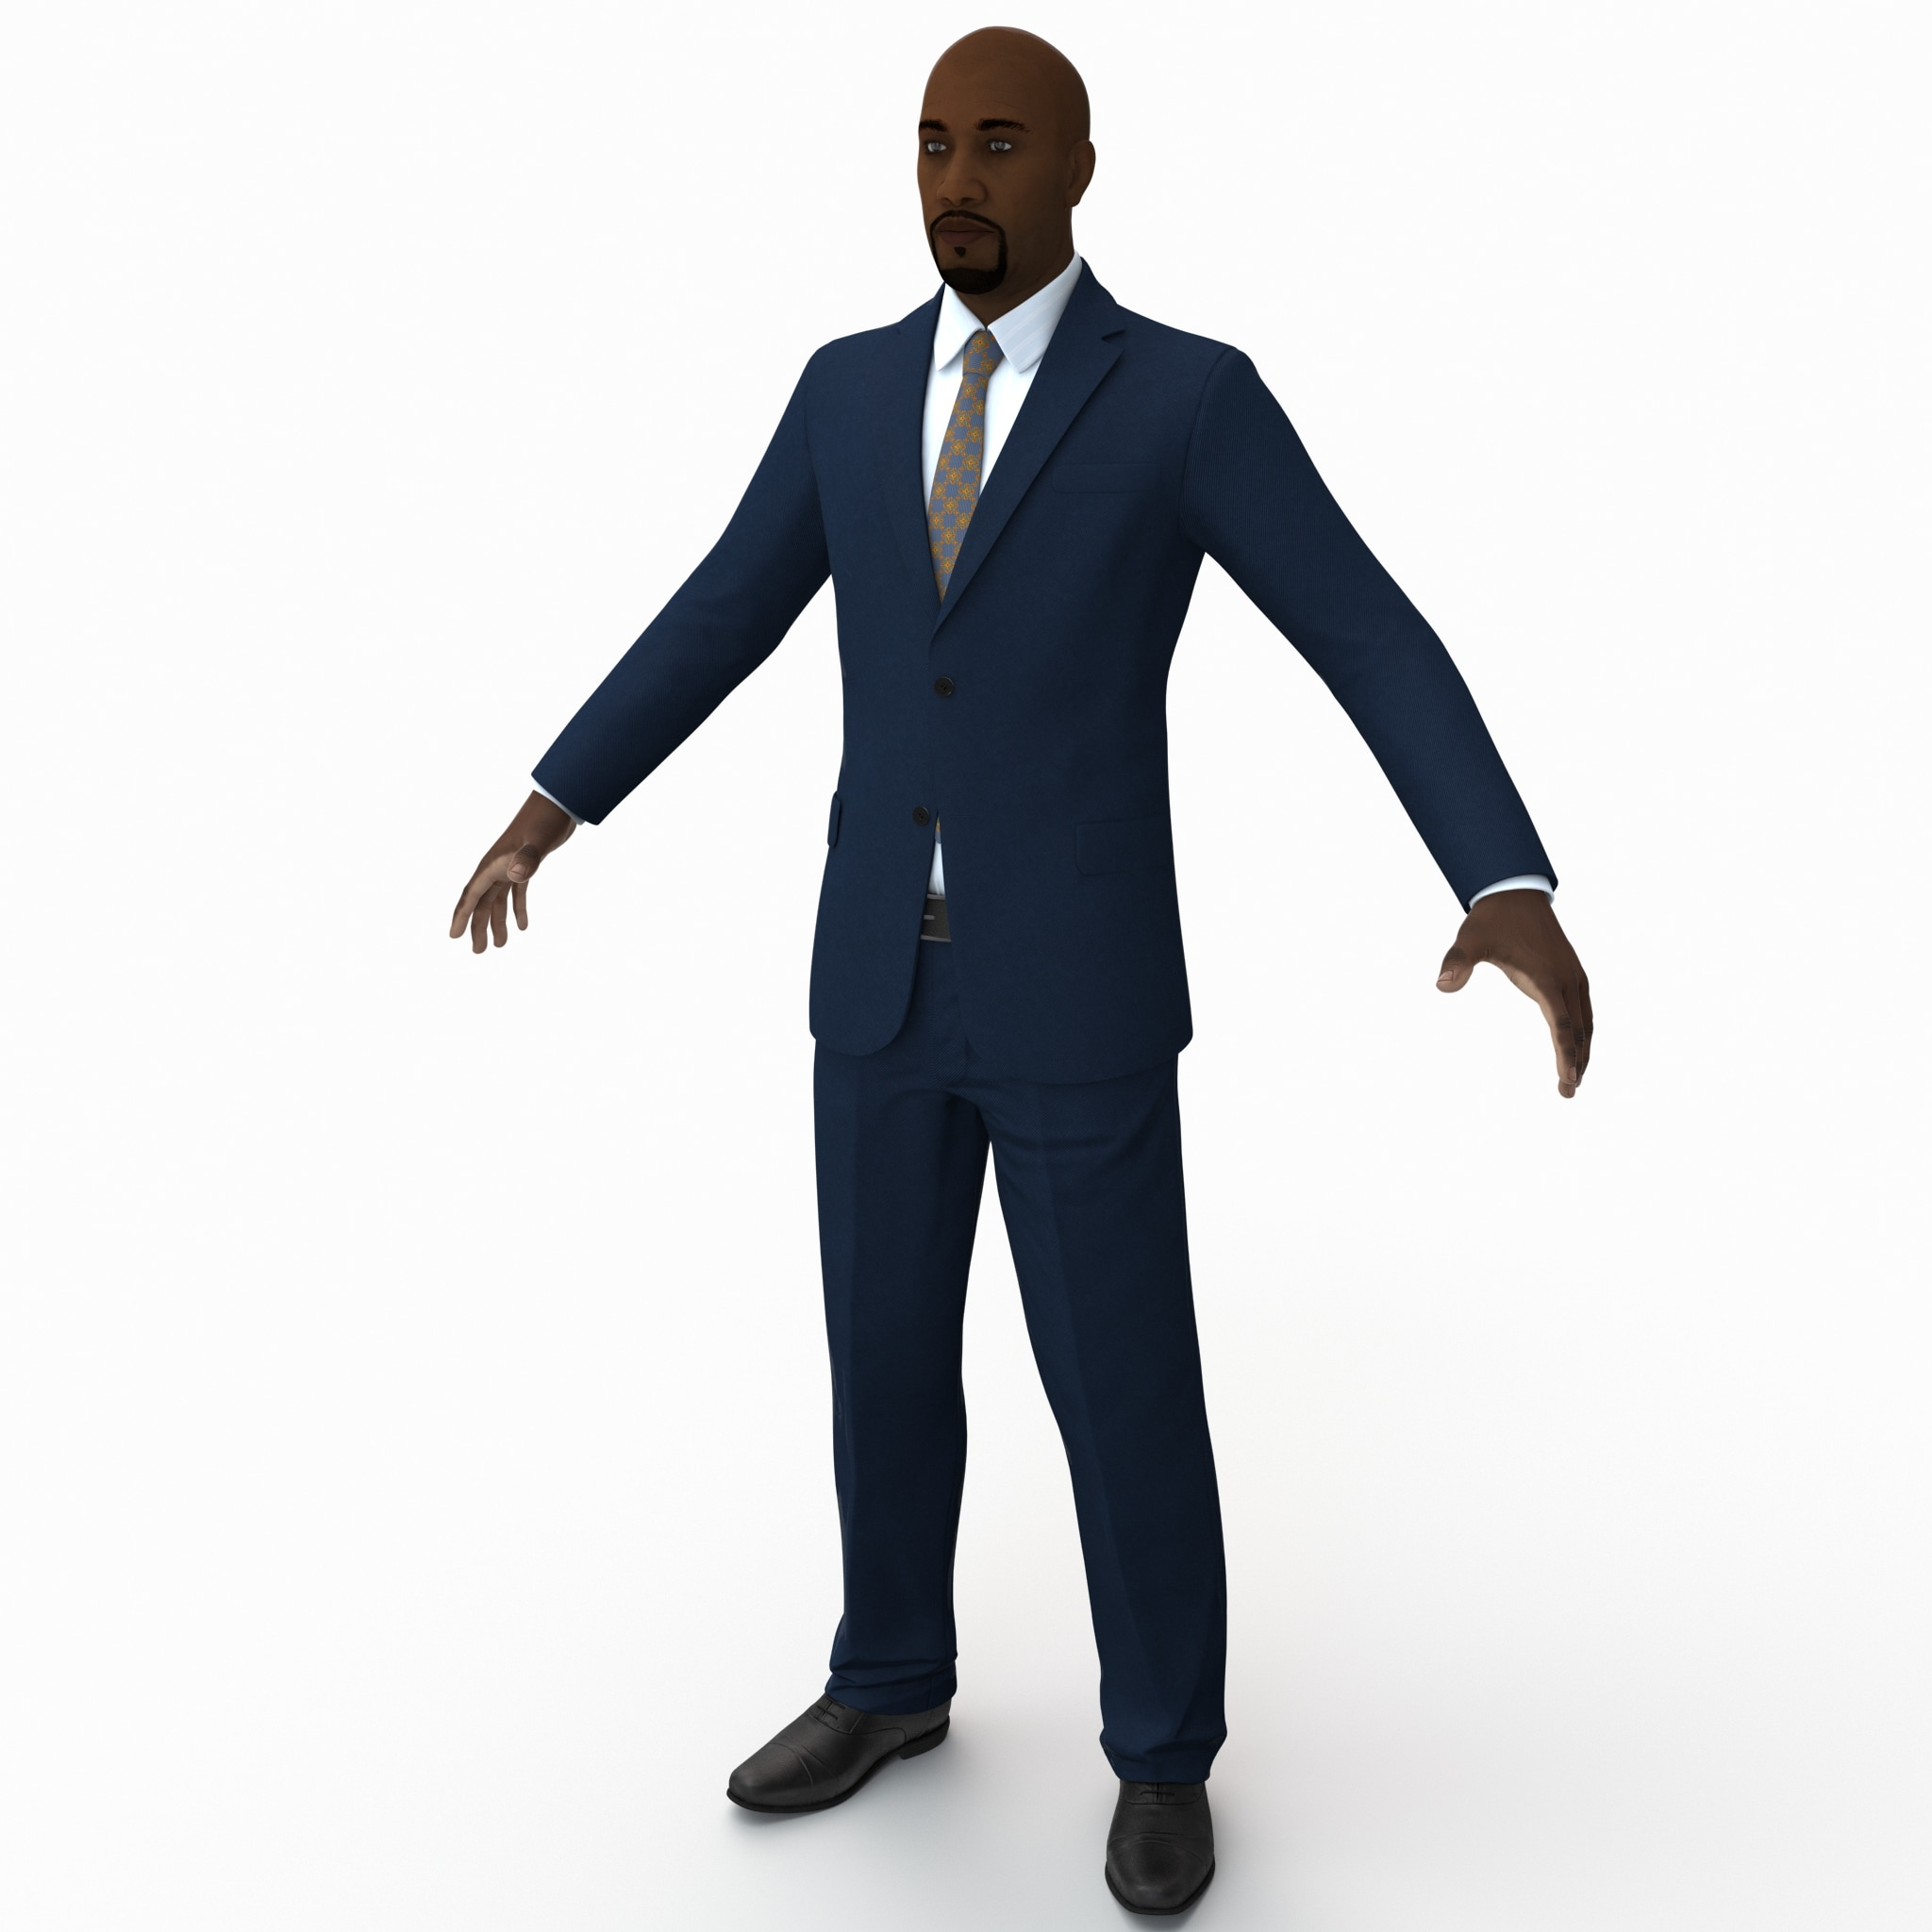 Black Male Businessman Rigged_2.jpg